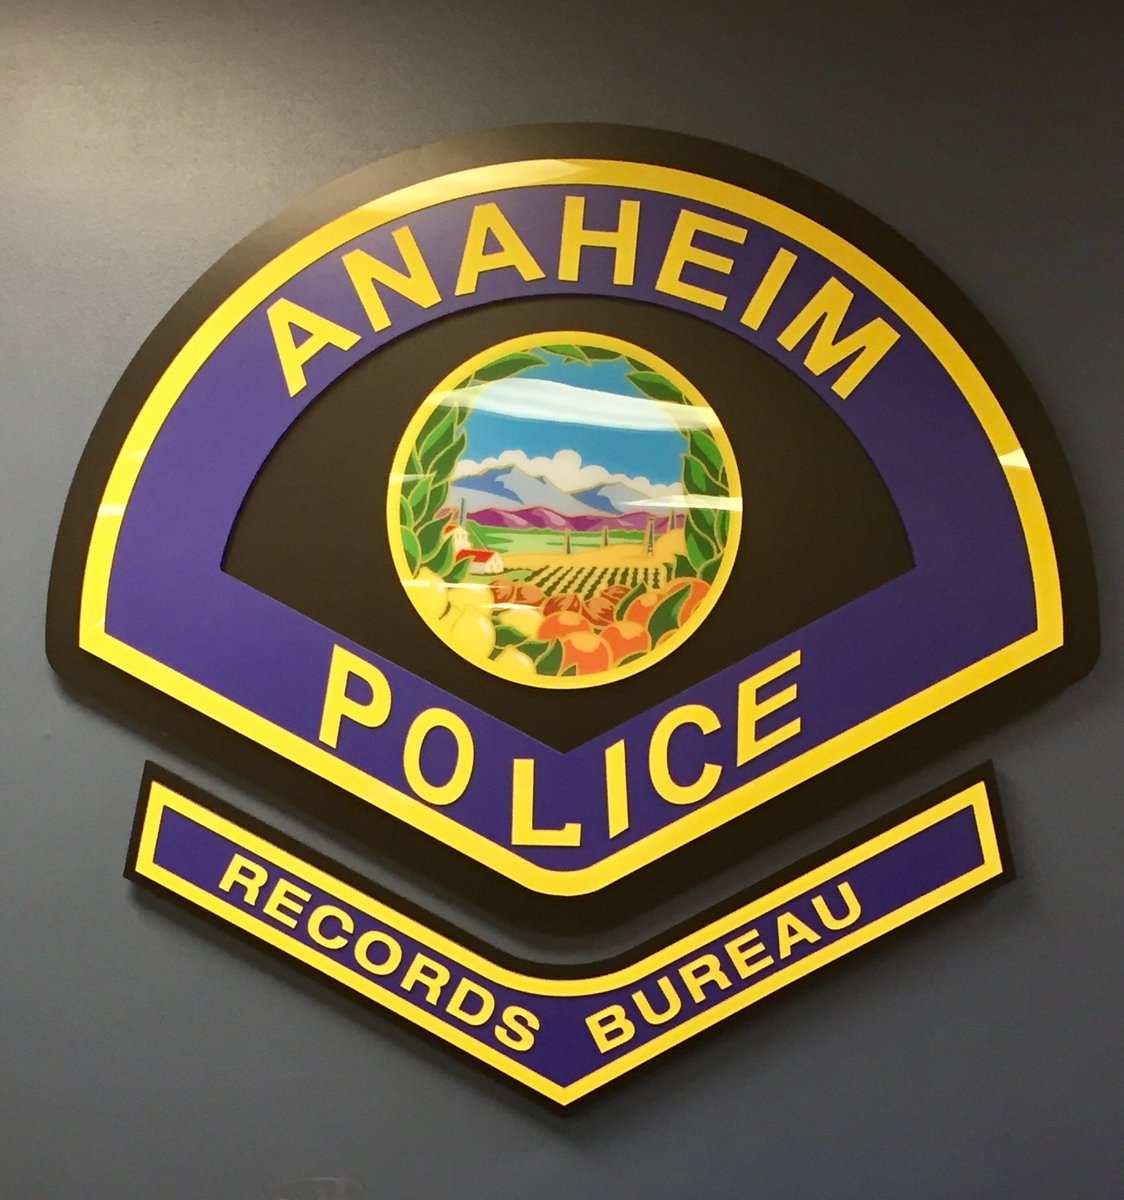 anaheim pd on applications being accepted for police anaheim pd on applications being accepted for police records supervisor 1st application deadline 4 28 17 at 5 00pm more info at